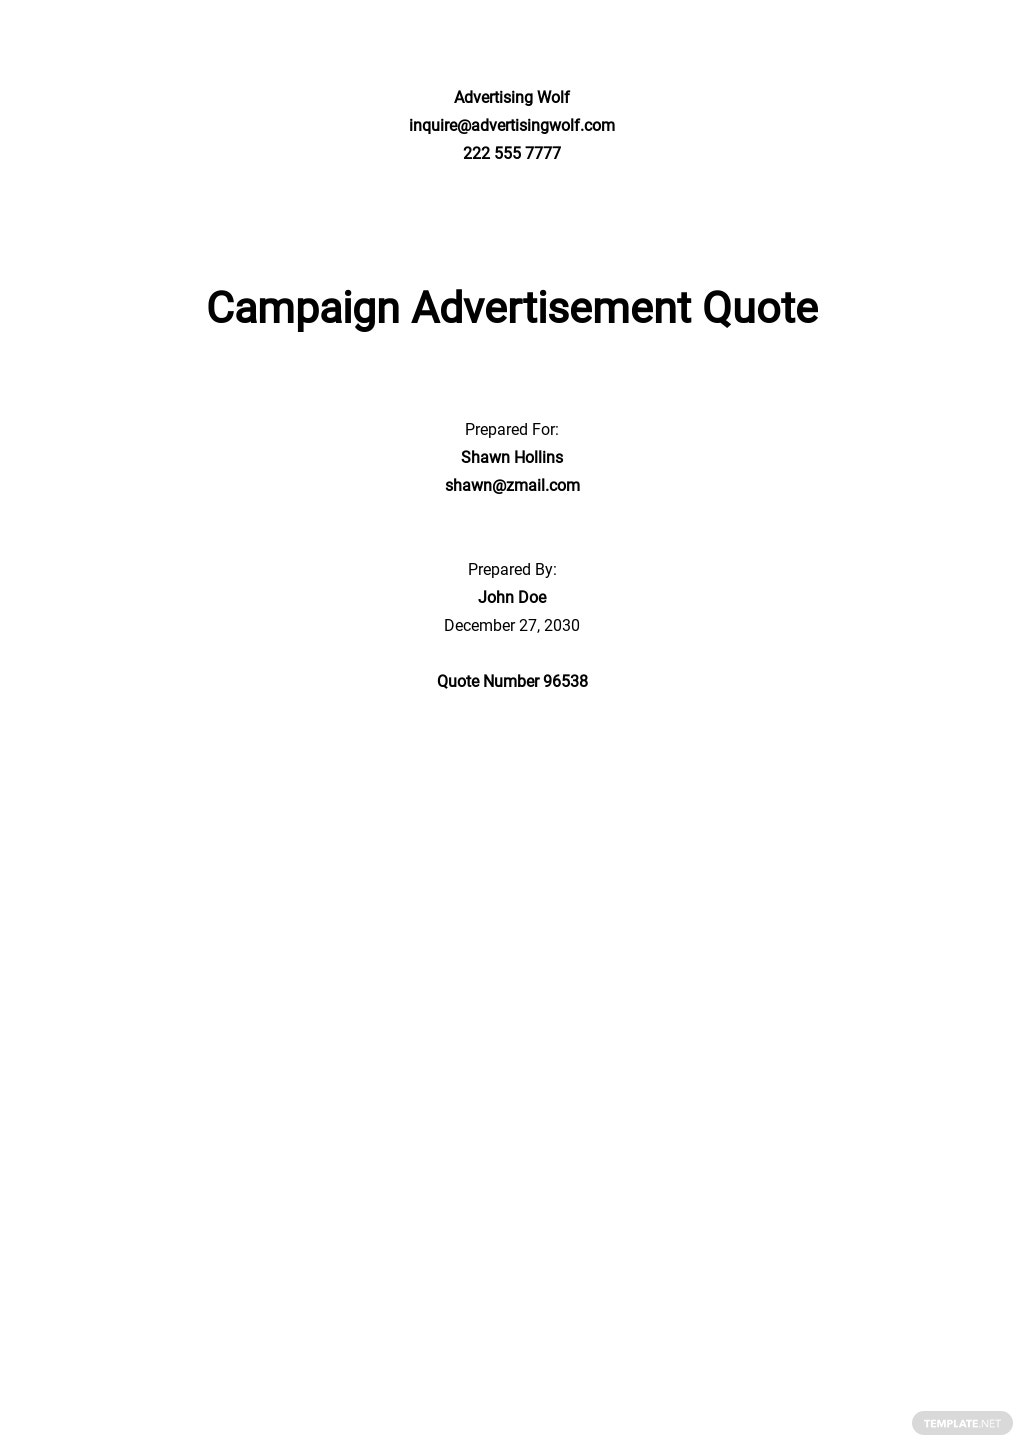 Advertising Services Quotation Template